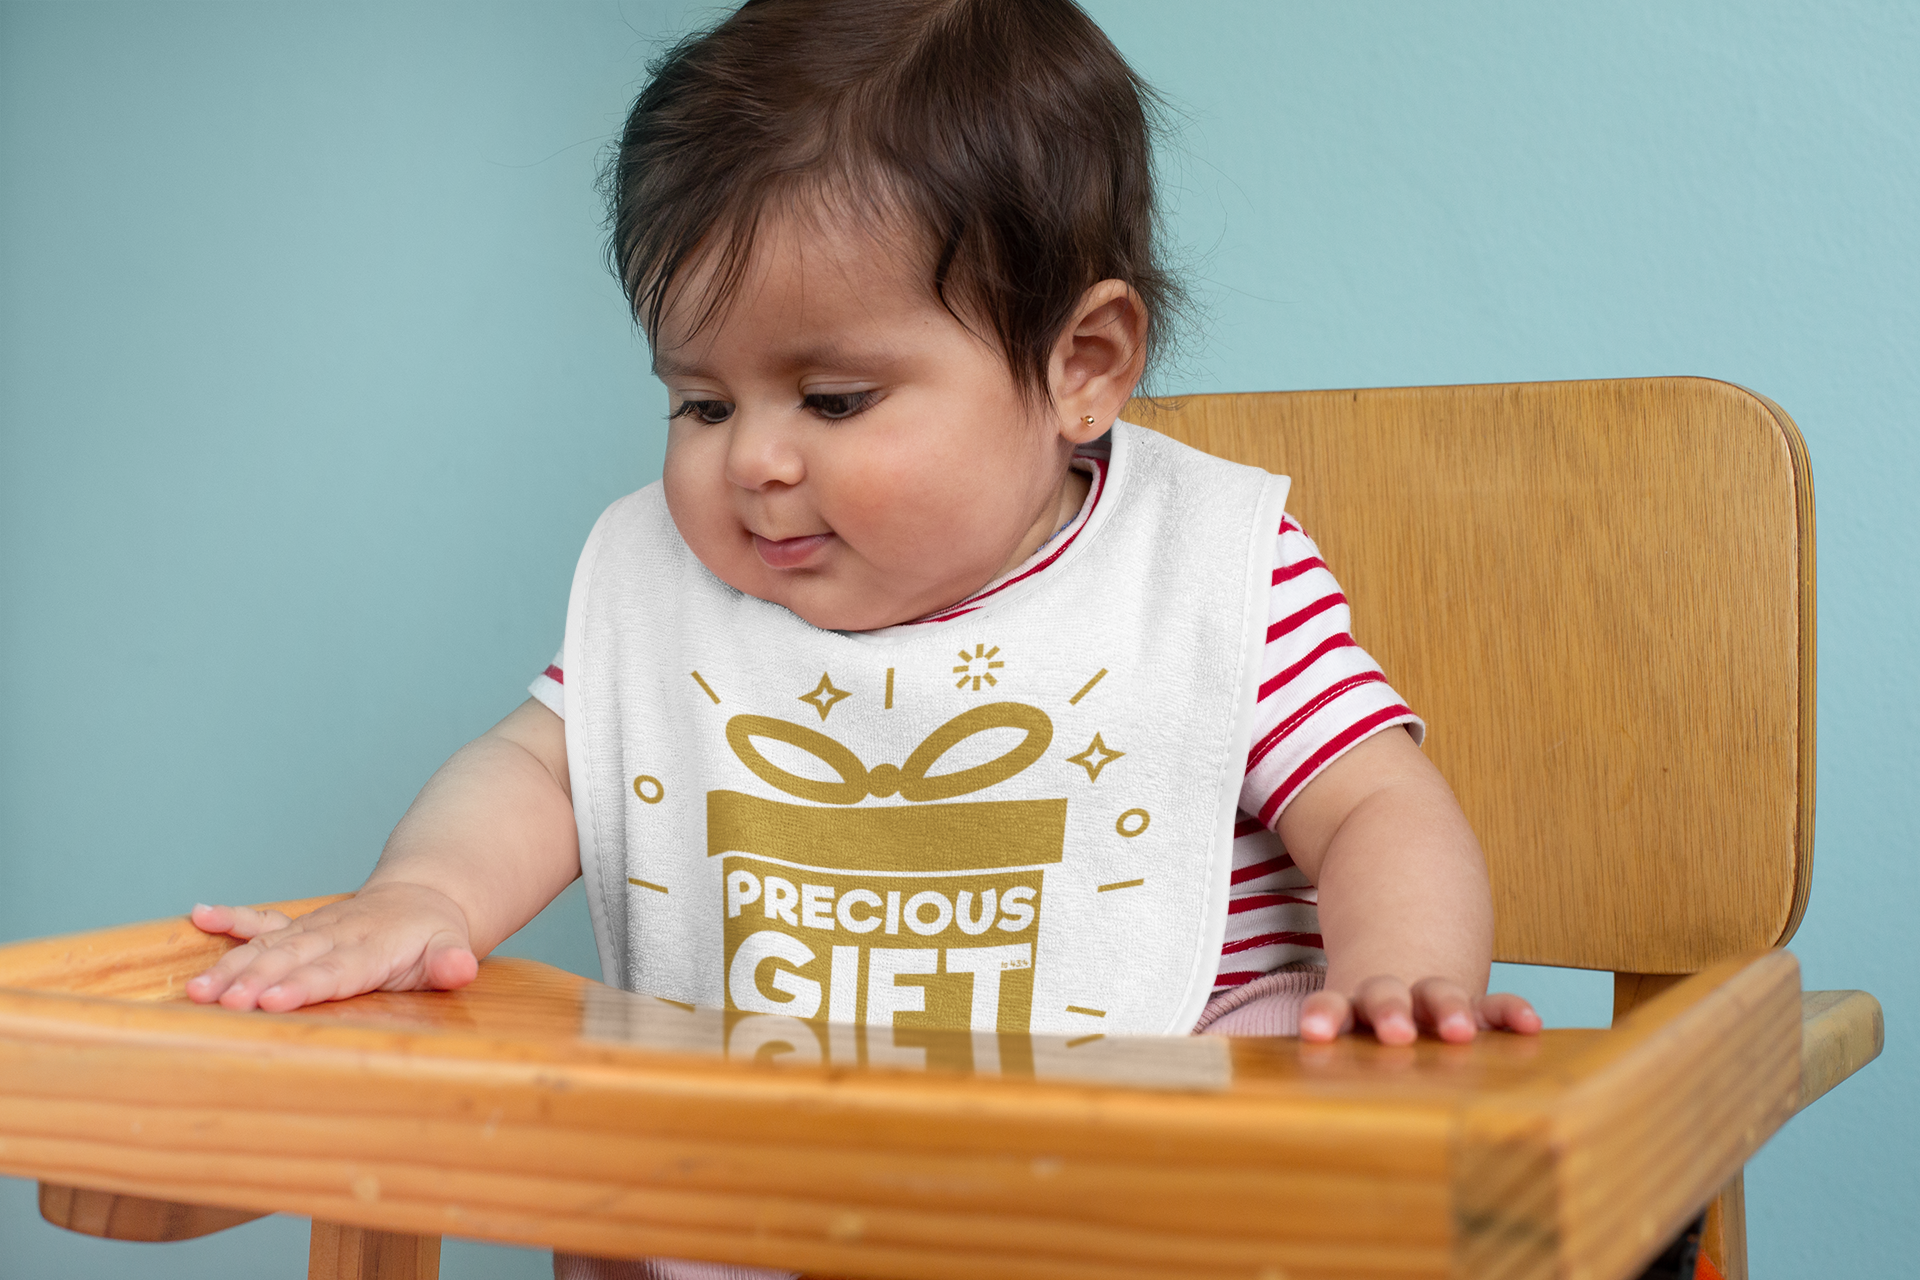 Baby wearing precious gift bib while sitting in high chair